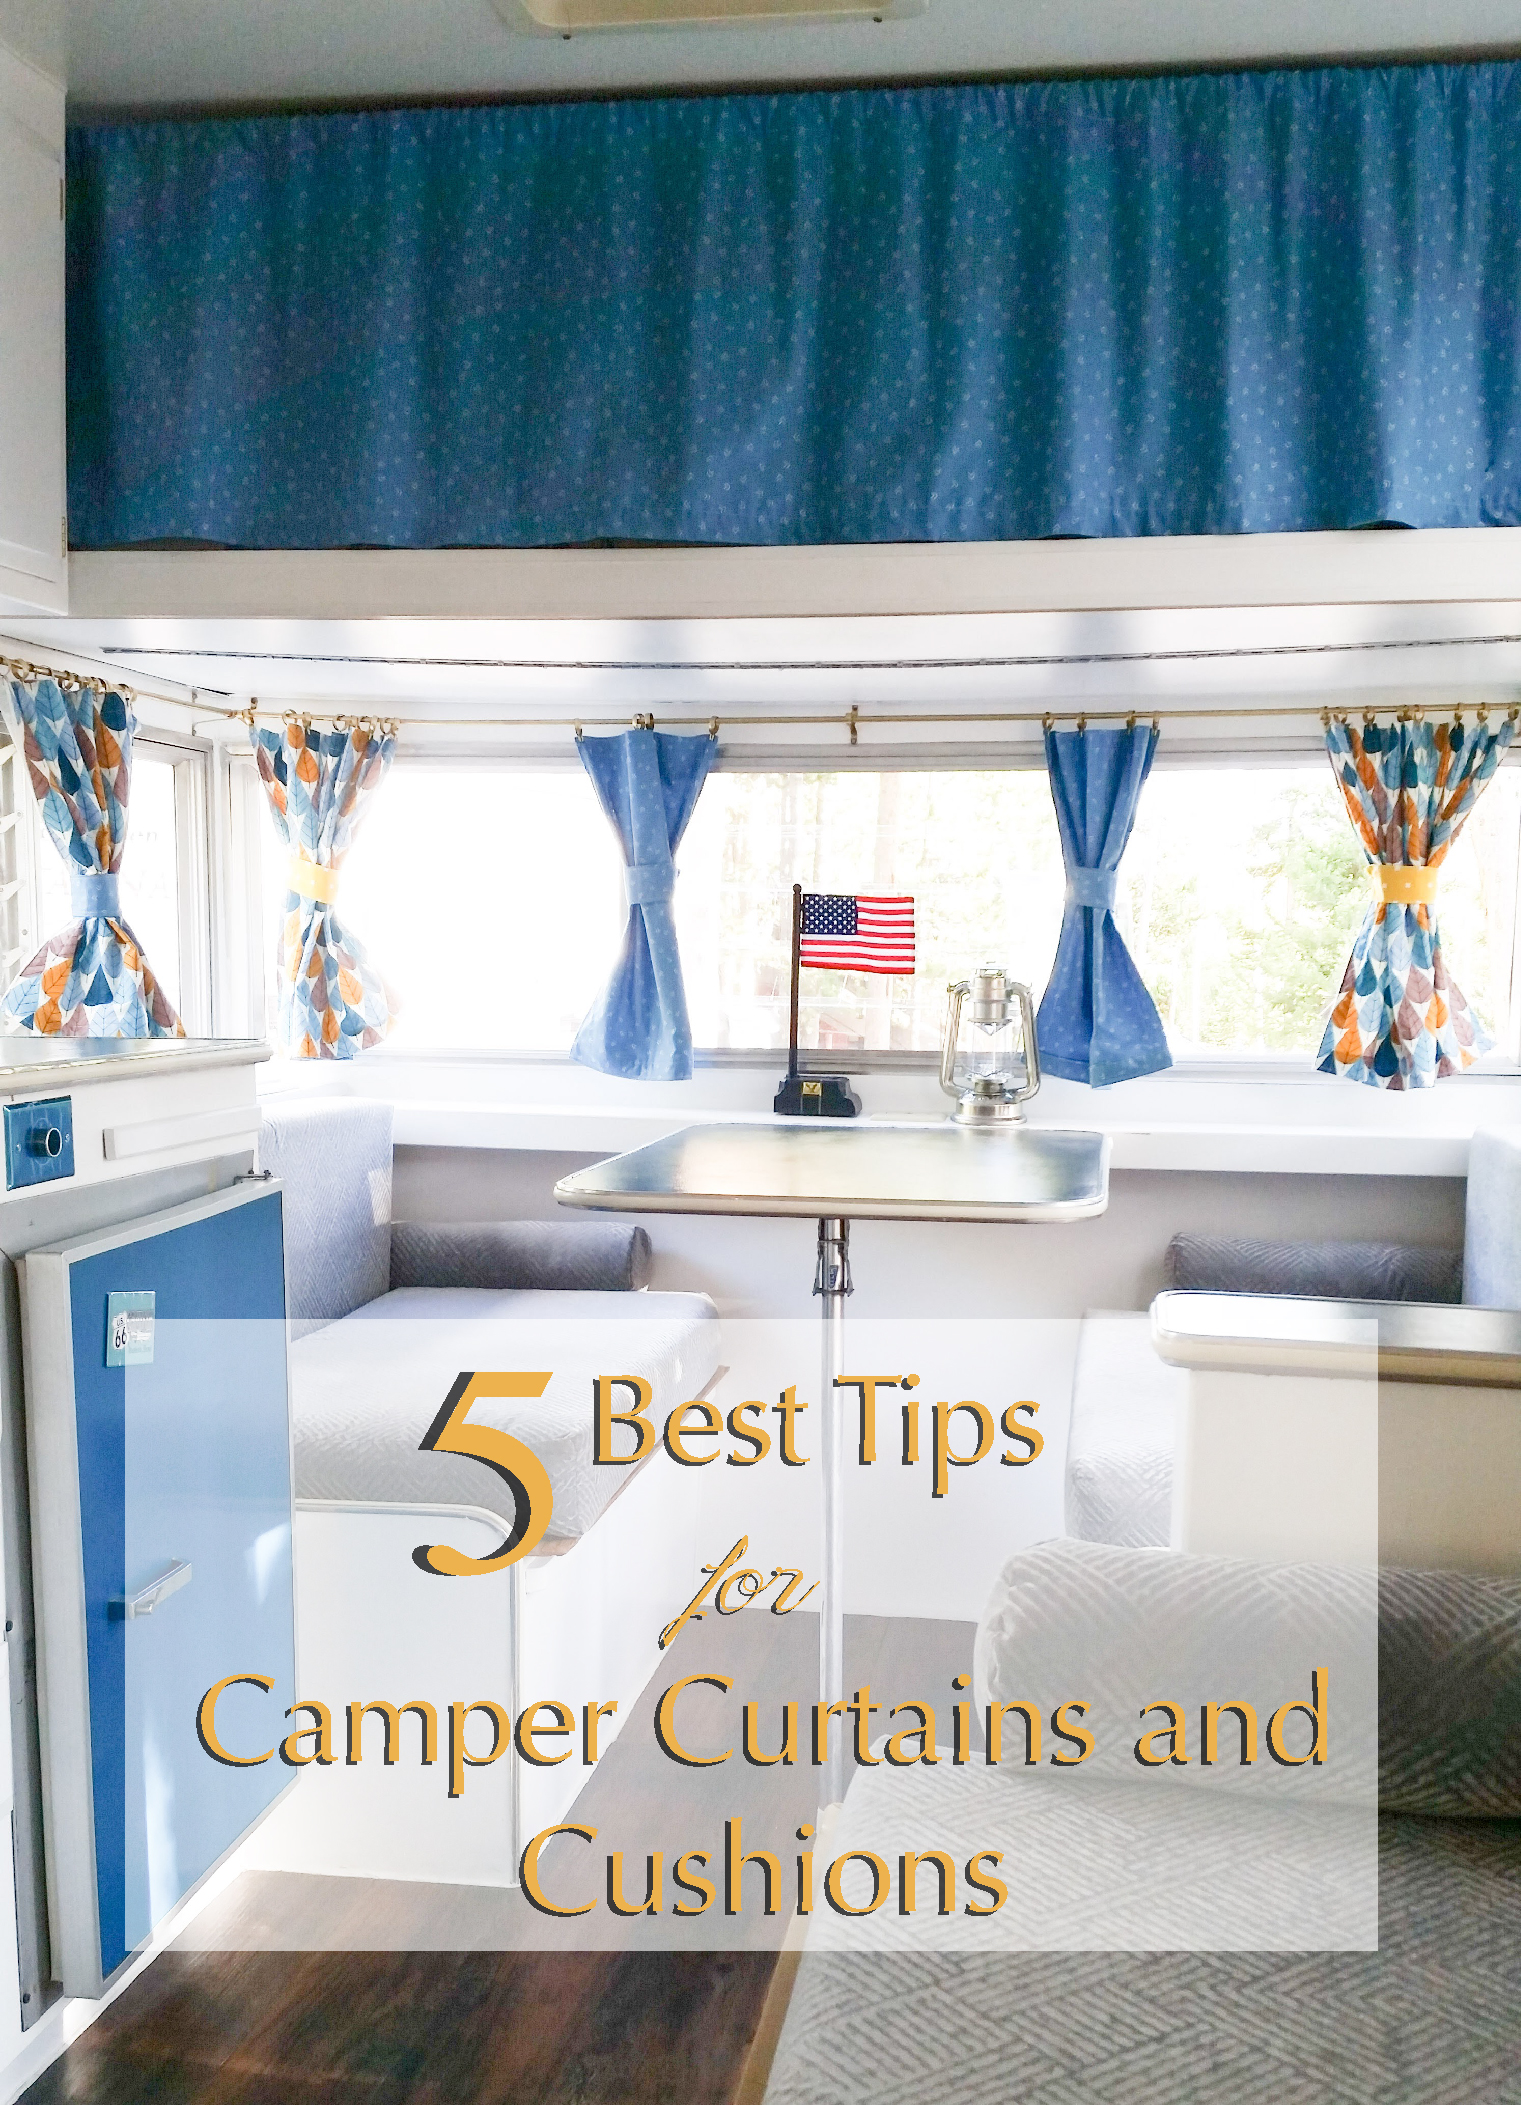 Trailer Curtains 5 Best Tips For Diy Camper Curtains The Vintage Journey